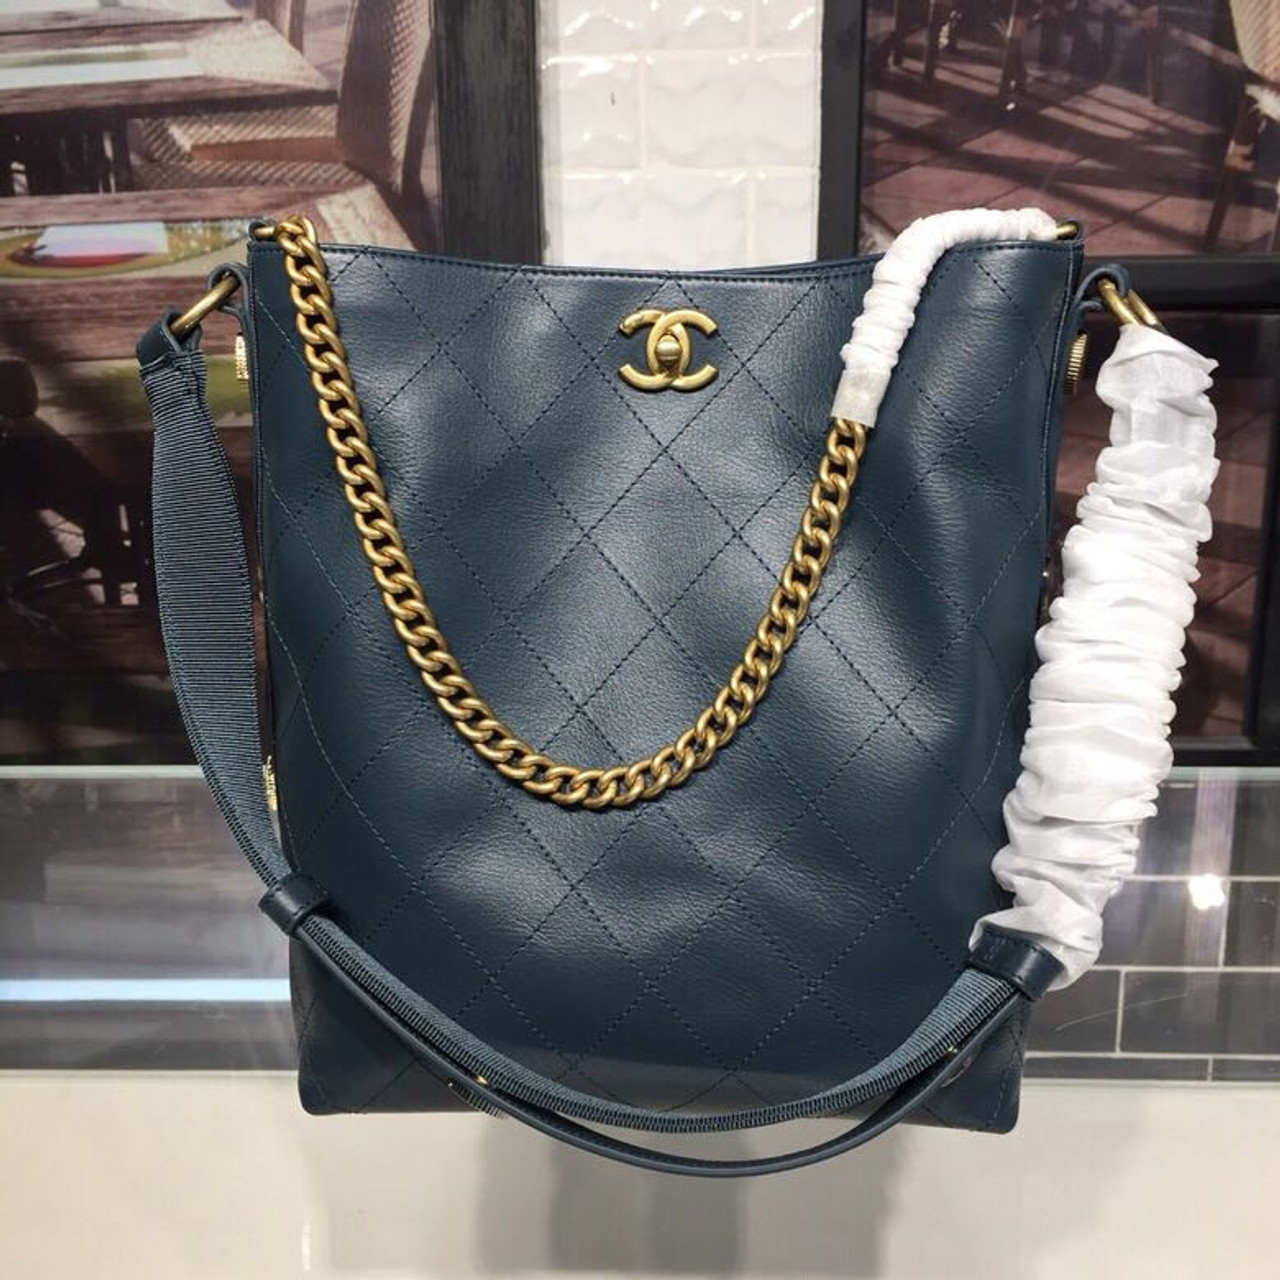 819567d061a5 Chanel Button Up Hobo Bag 26cm Calfskin Leather Fall Winter 2018 Act 1  Collection